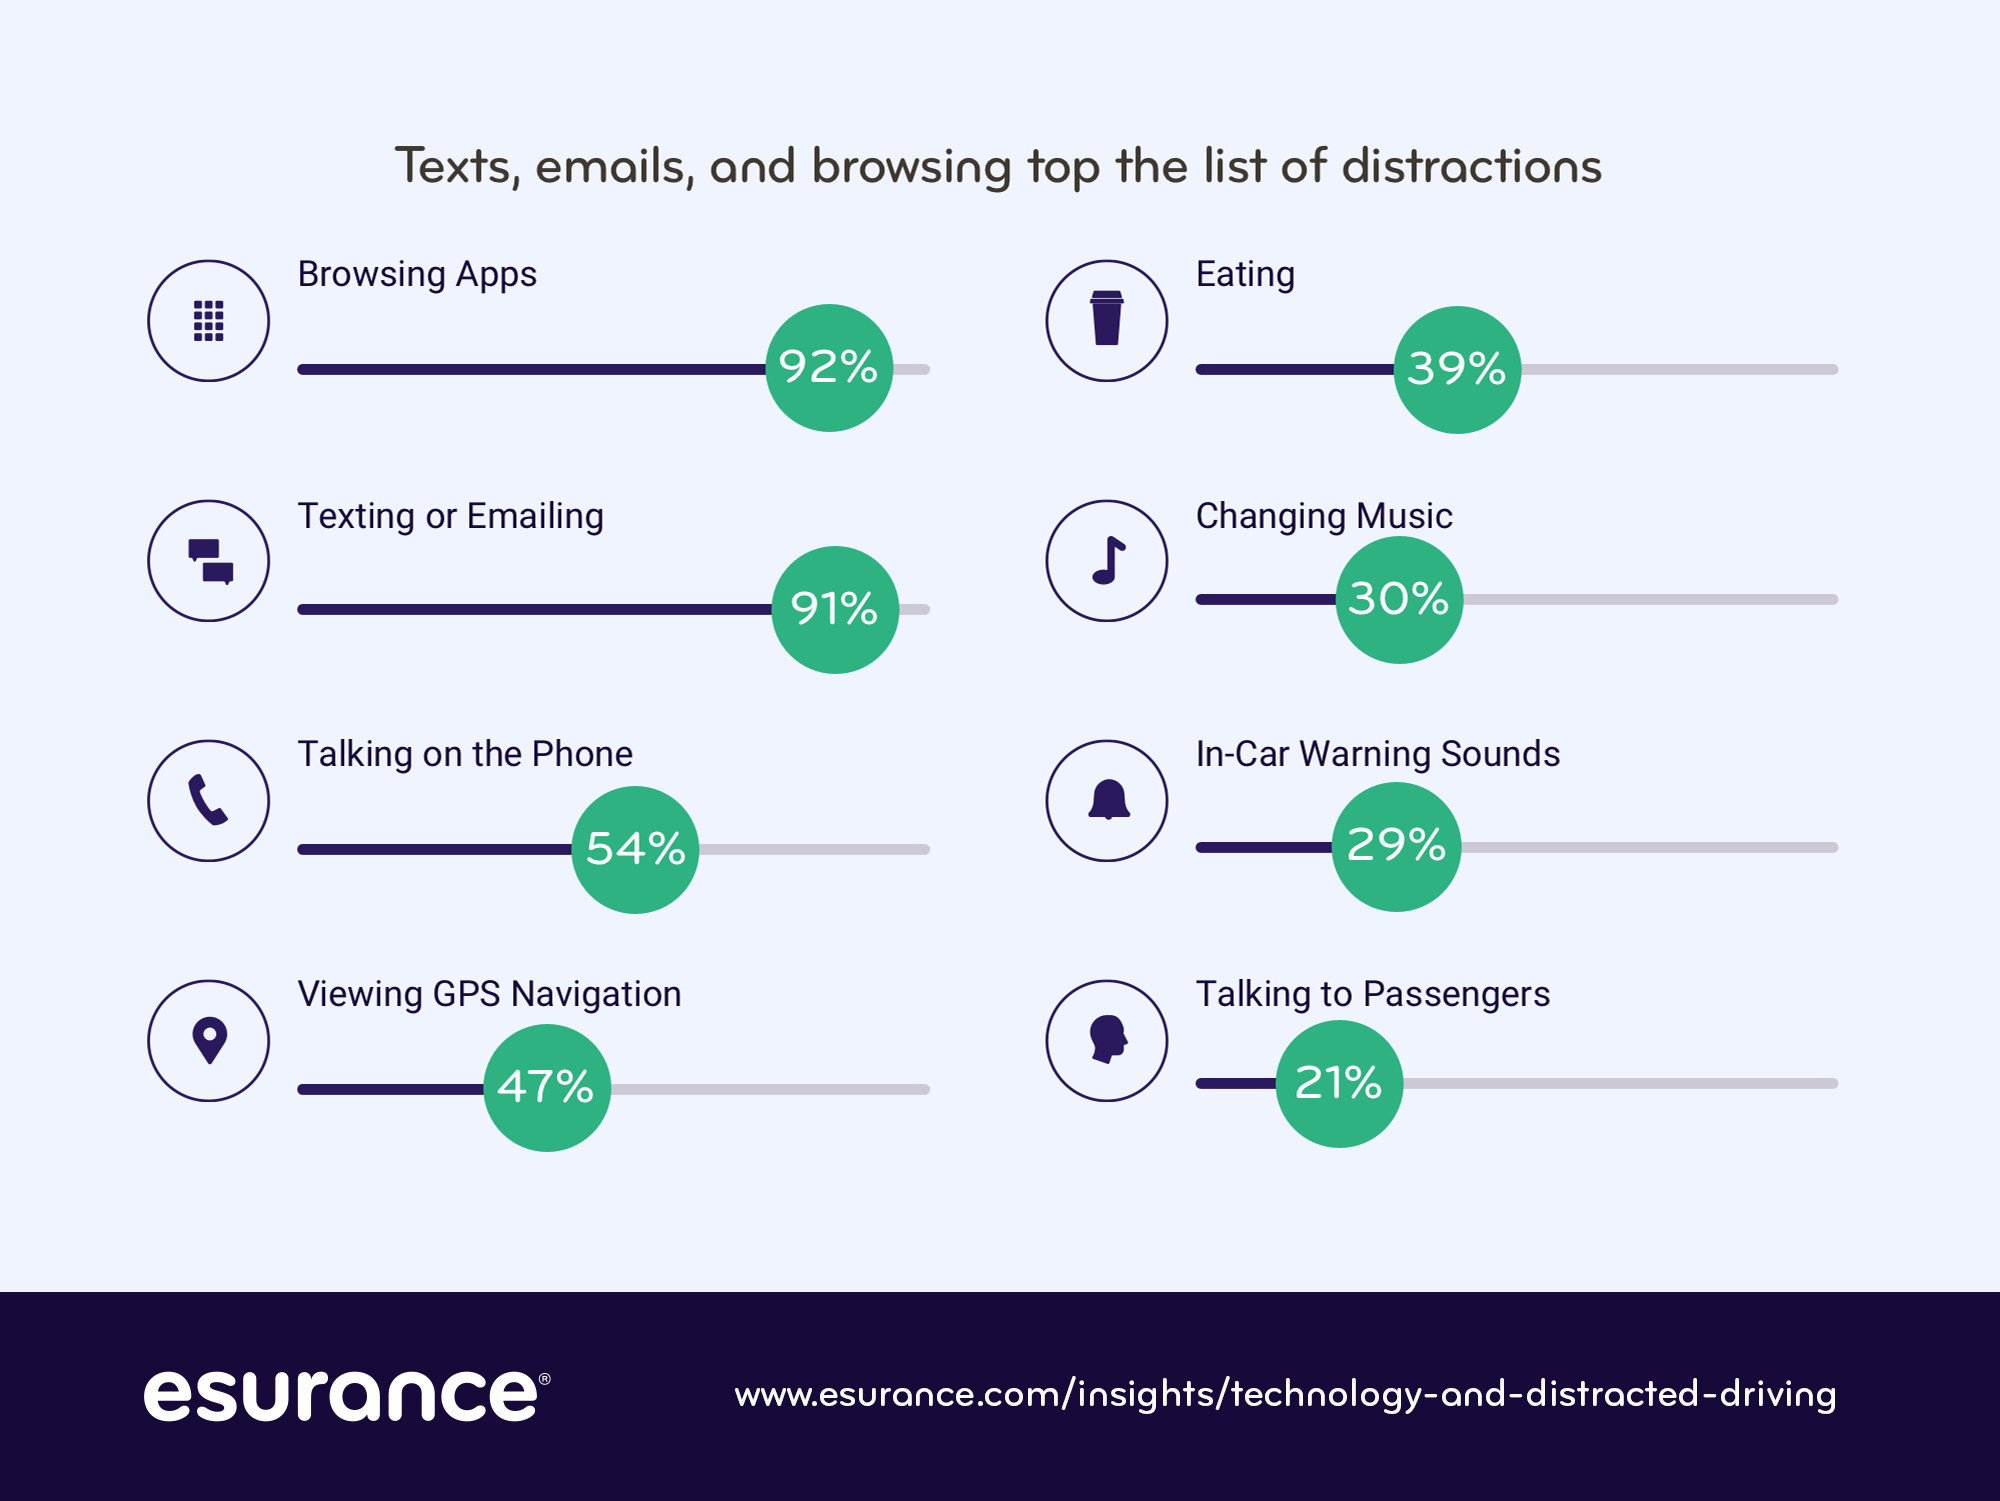 Browsing apps tops the list of driving distractions according to a recent Esurance survey. Nearly half of drivers distracted by viewing GPS navigation.